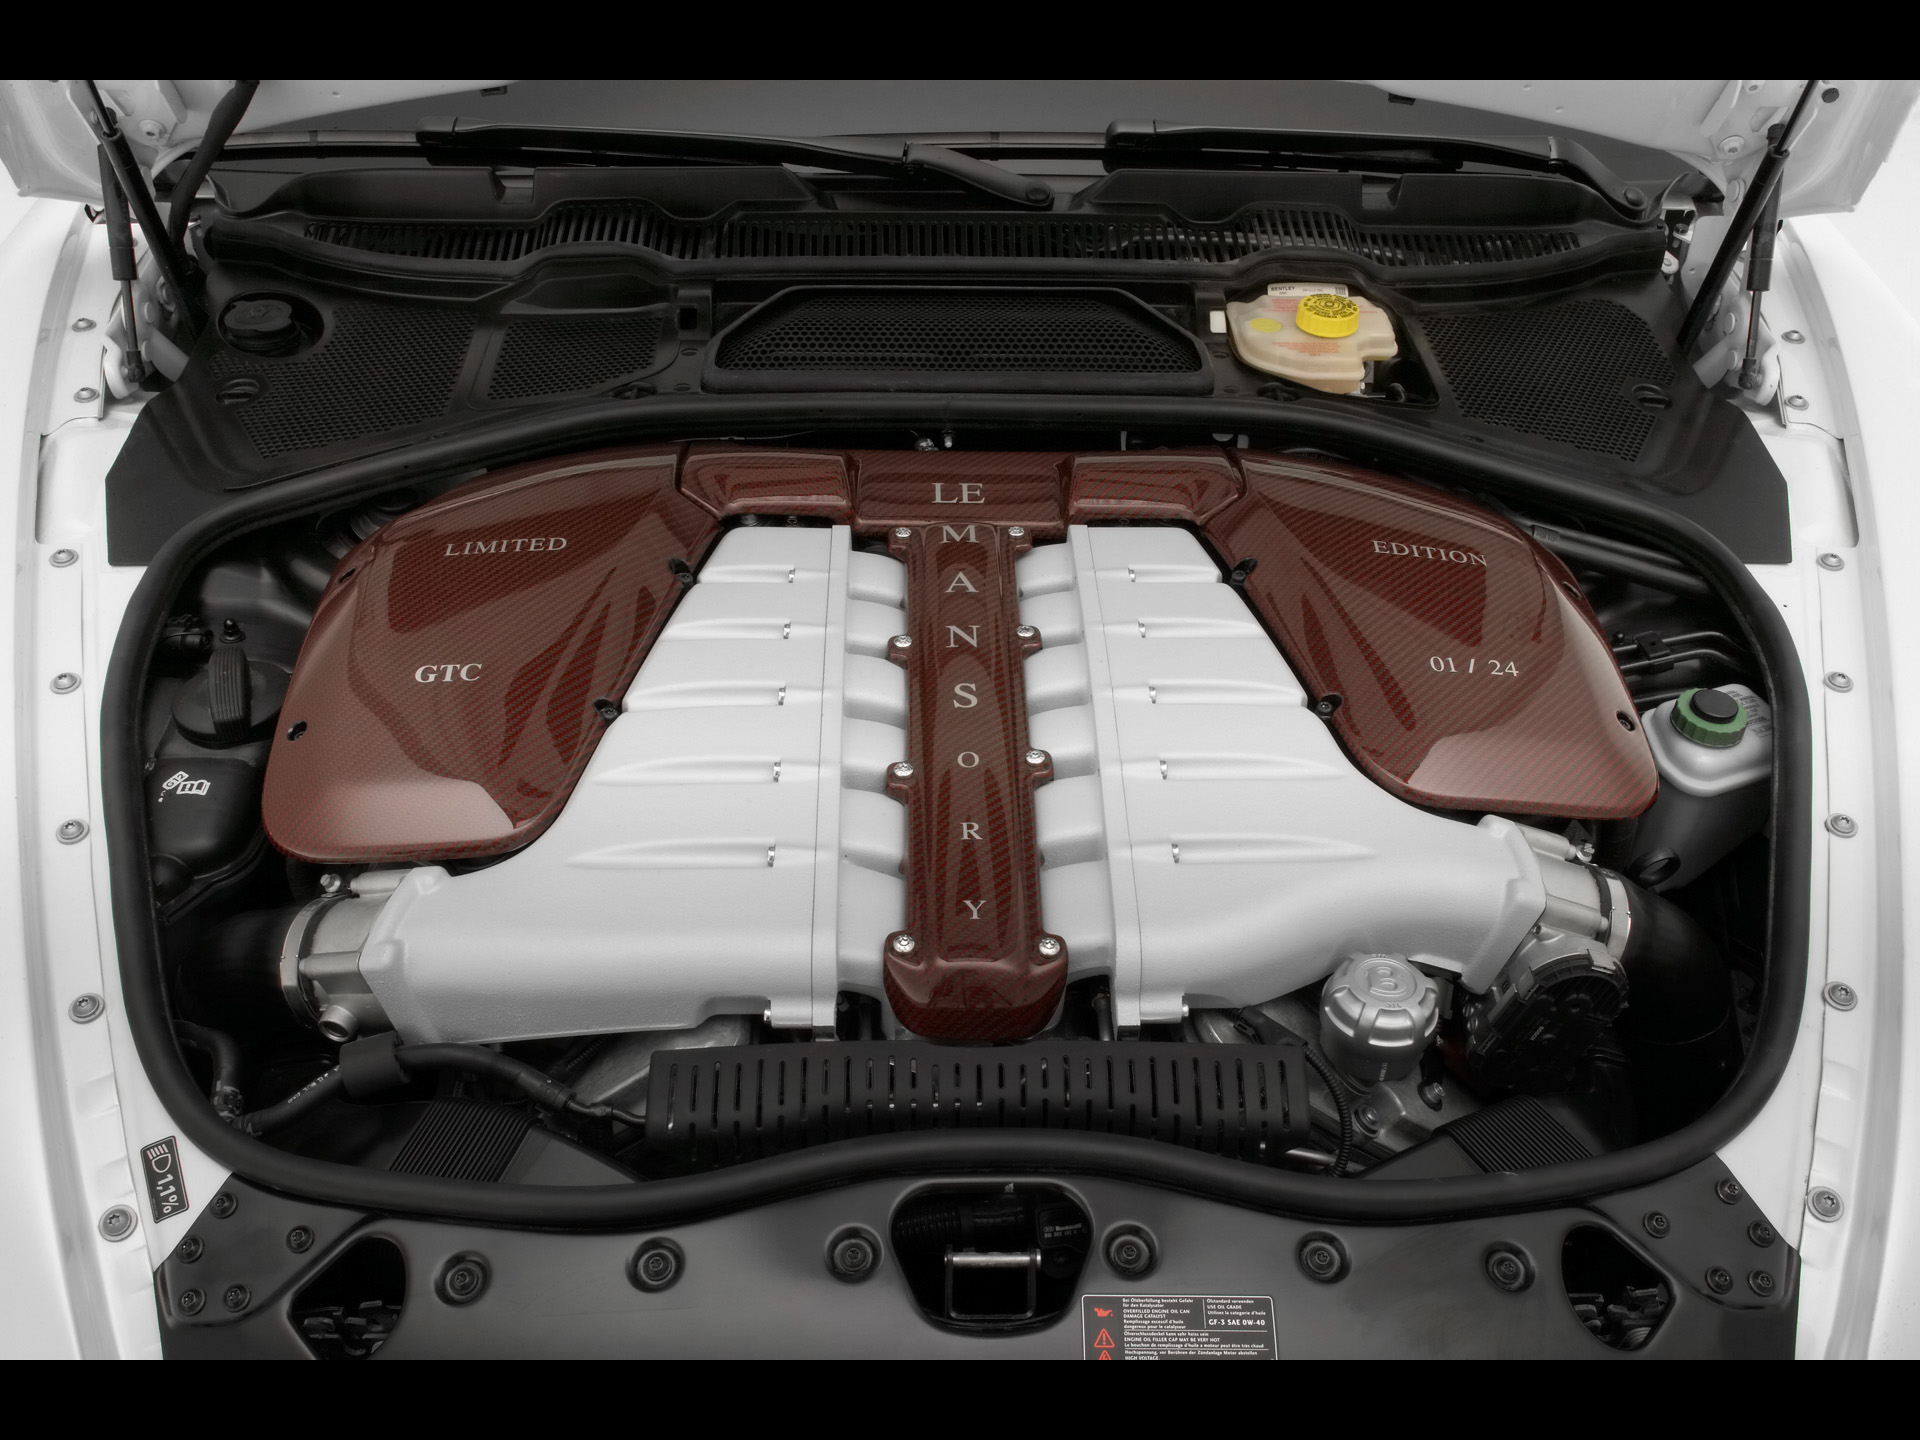 Bentley Continental GTC engine #2